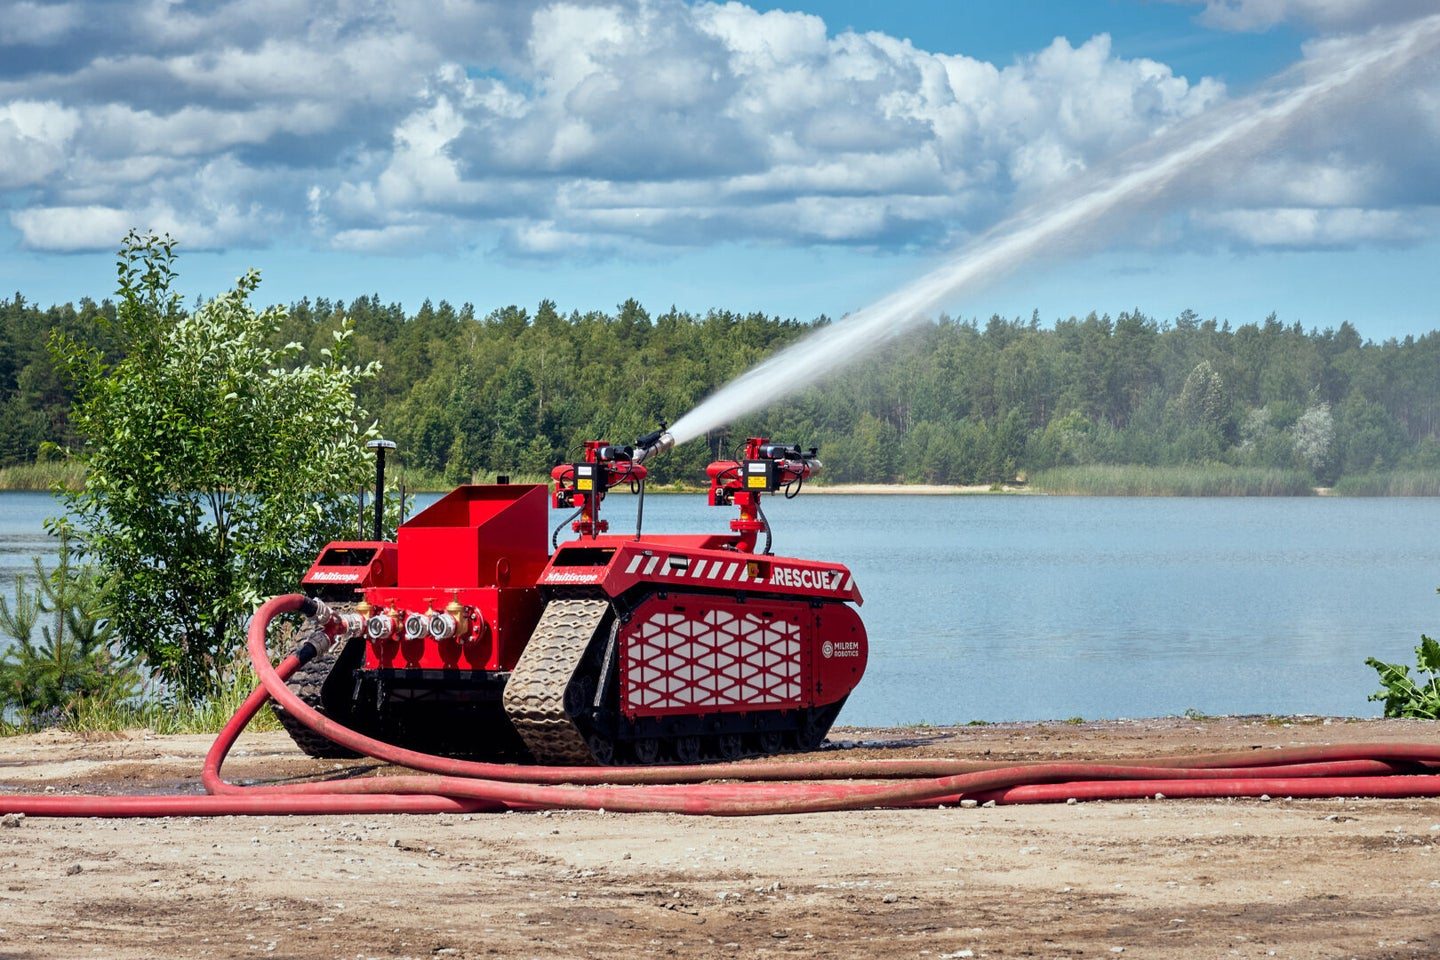 This helpful tank-like robot fights fires, not people